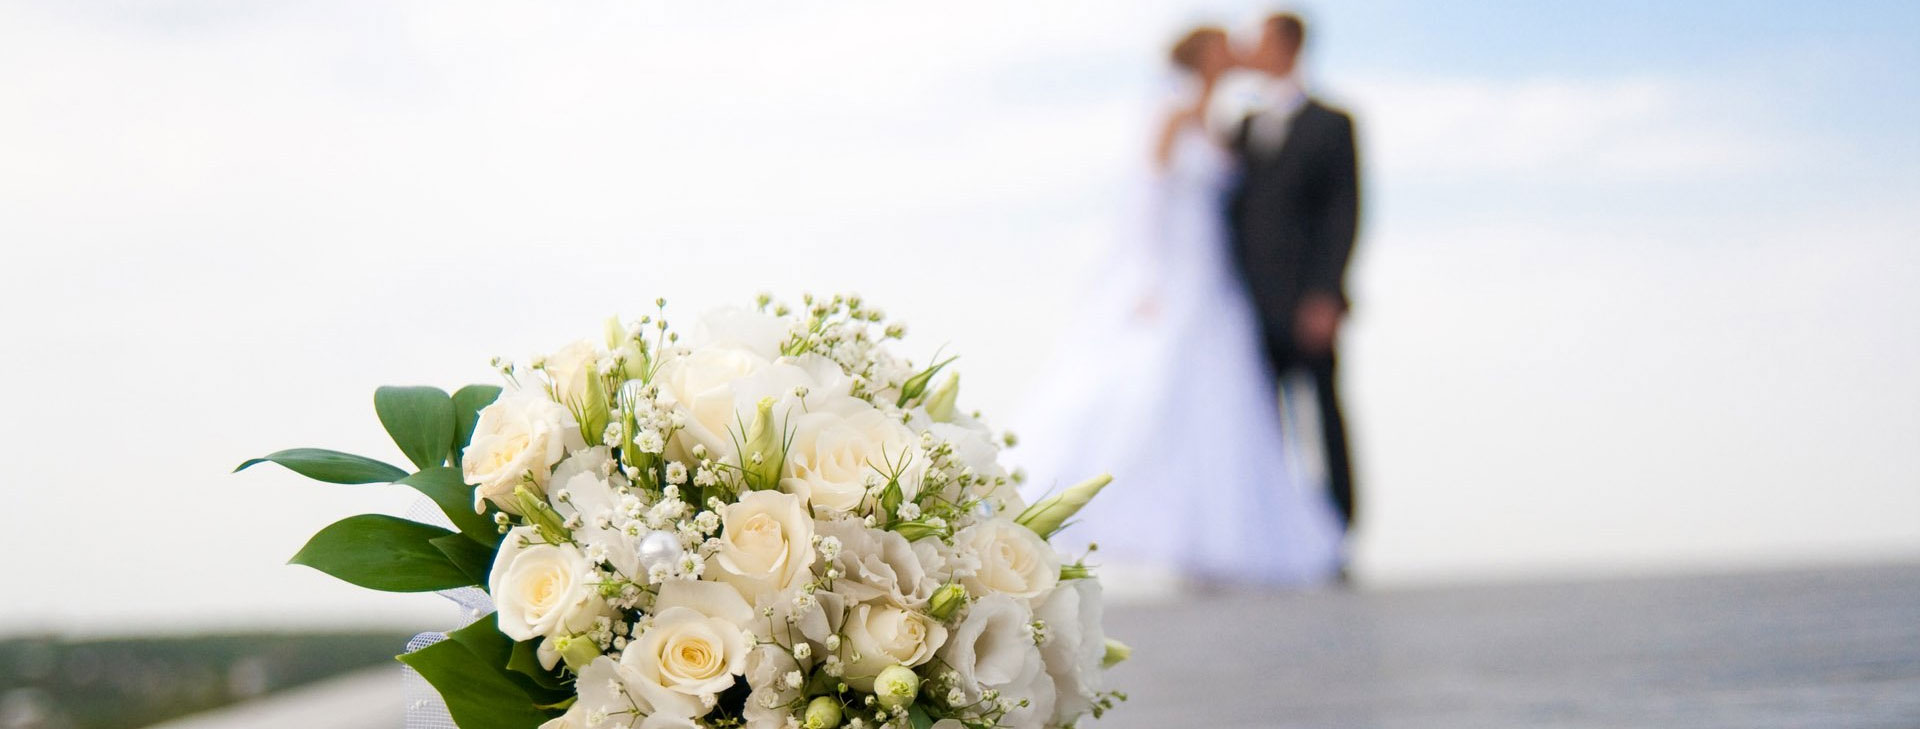 Use our wedding planning checklist and wedding planning guides